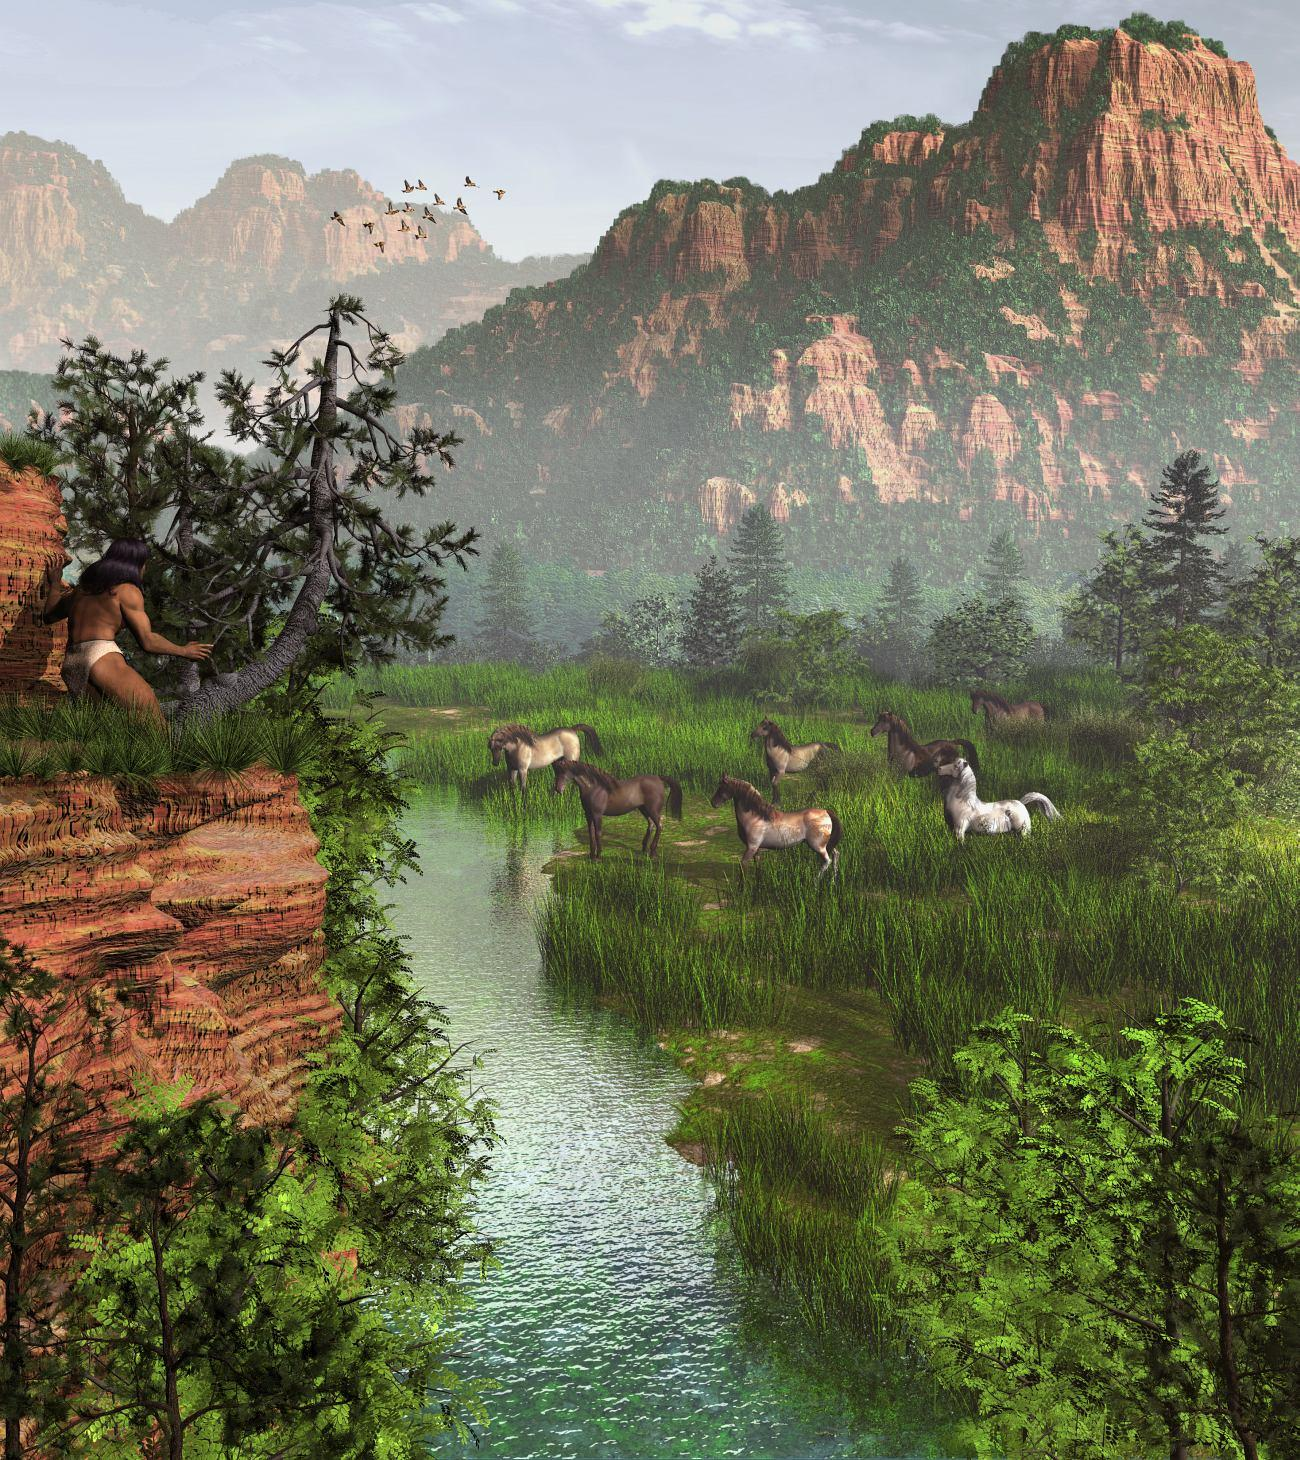 Valley of the Wild Horses